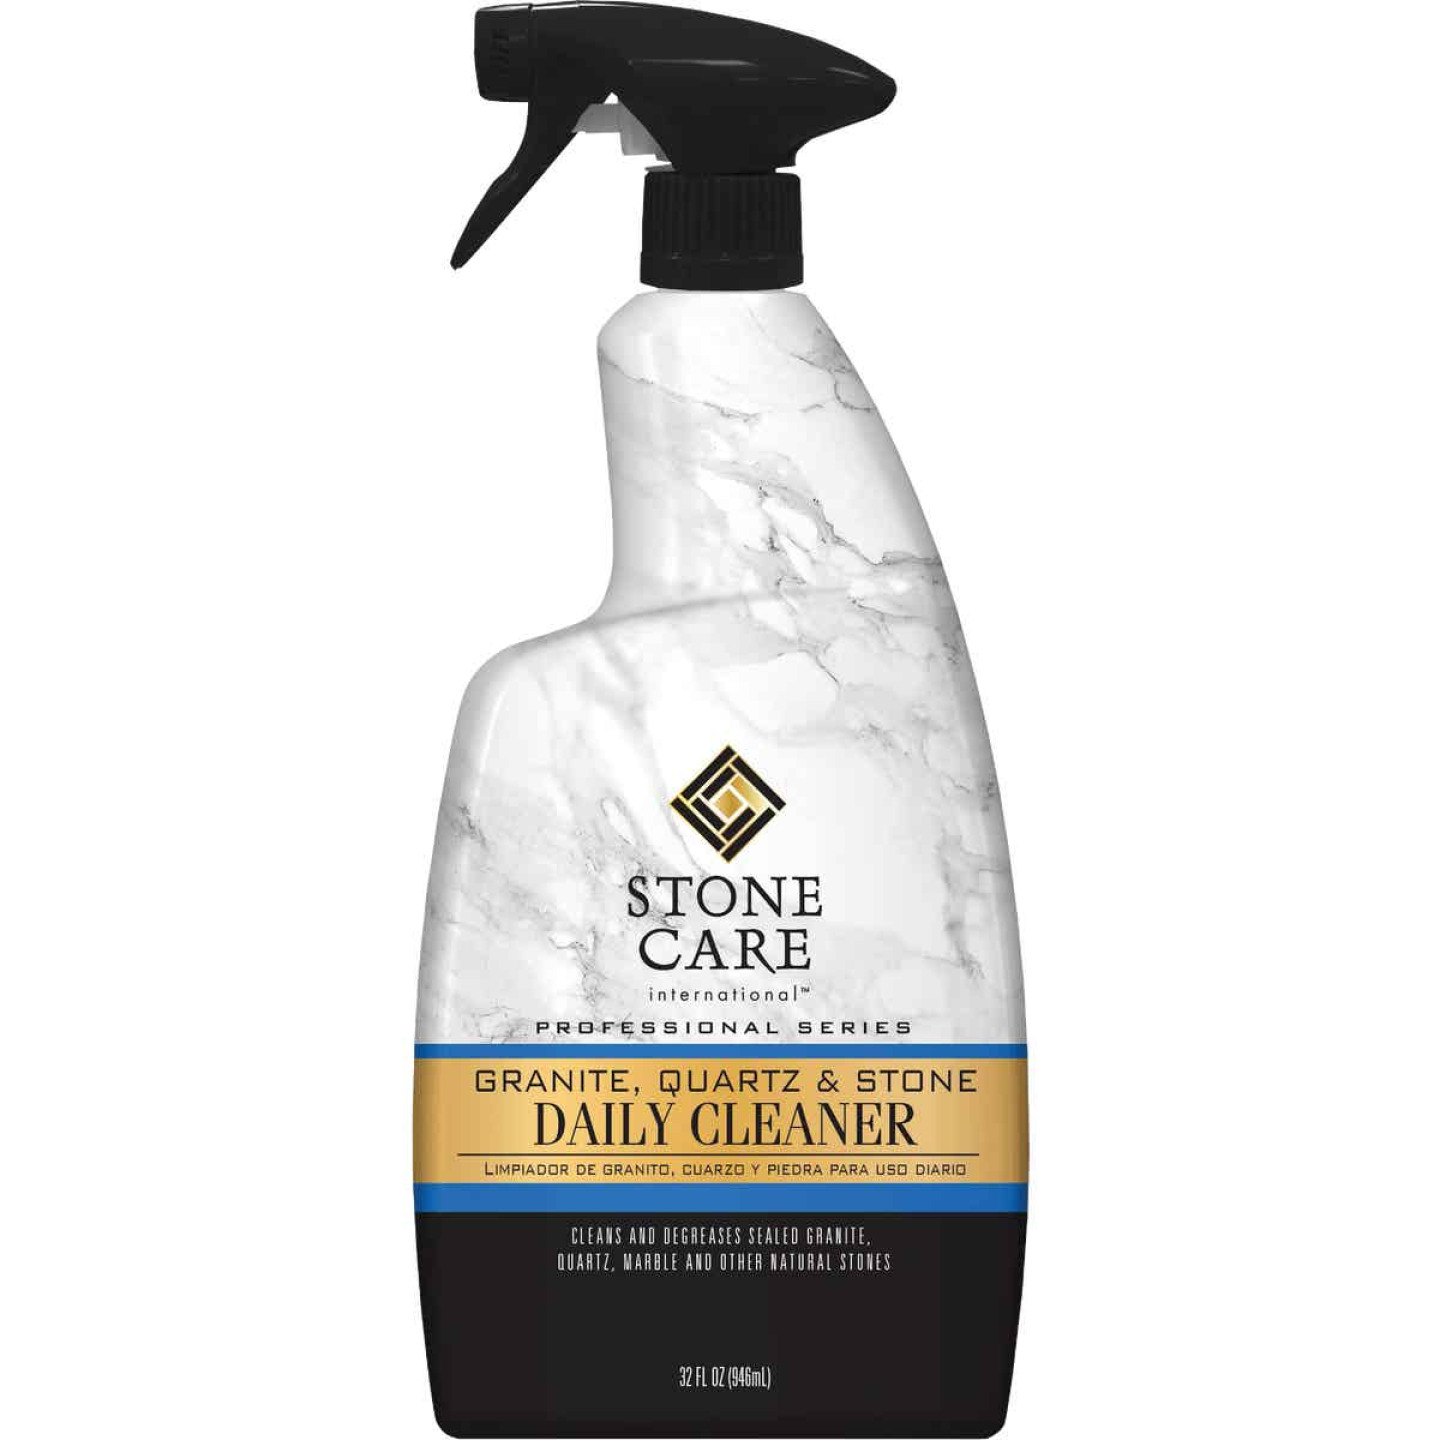 Stone Care International 32 Oz. Daily Stone Cleaner Image 1